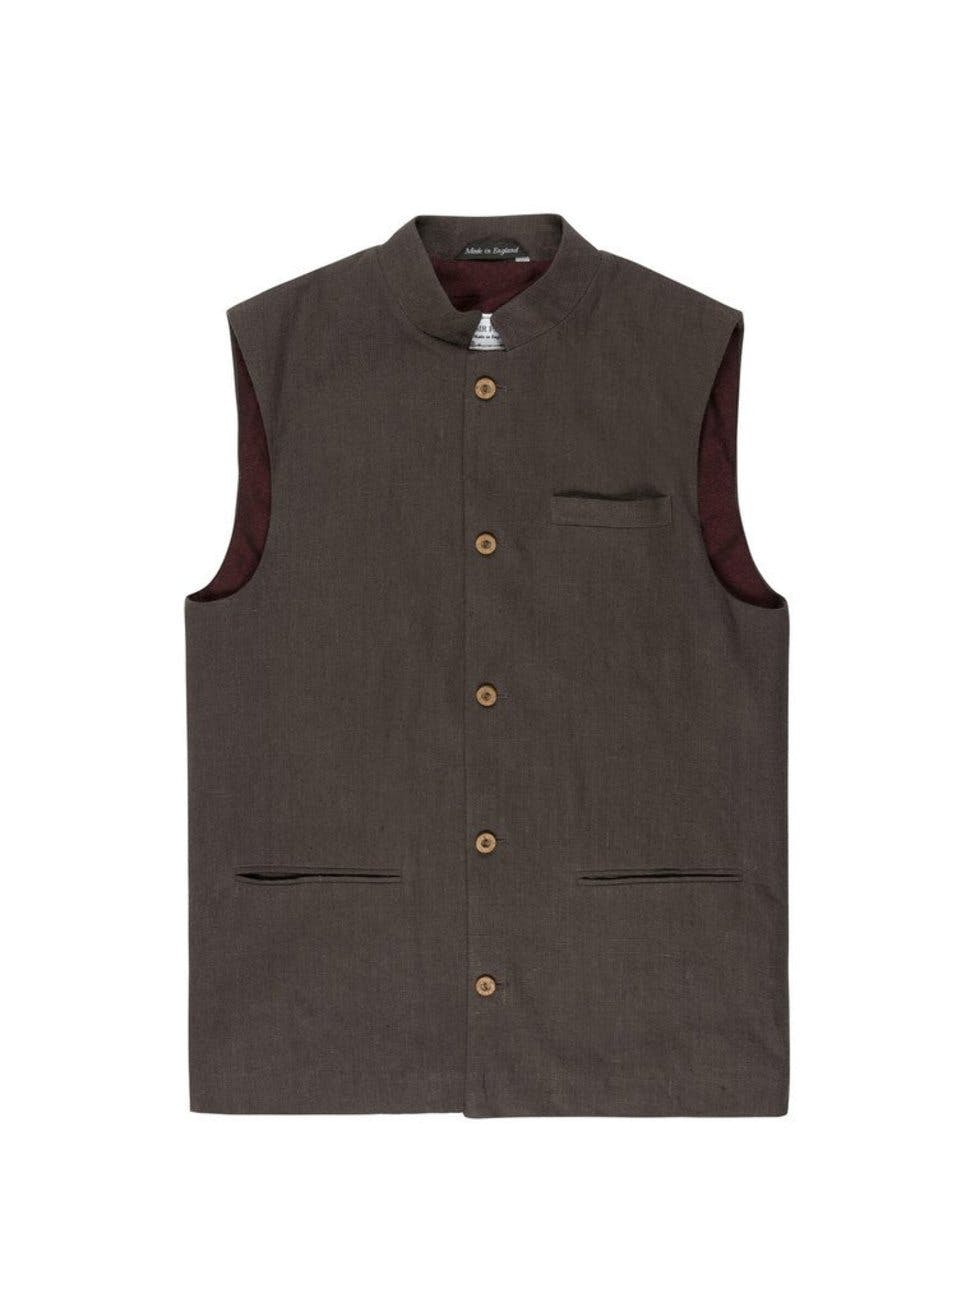 3b66ed5f962f The 'Nehru' is a mandarin-style jacket made popular by India's first Prime  Minister, Jawaharlal Nehru. This linen waistcoat version is a statement  piece for ...